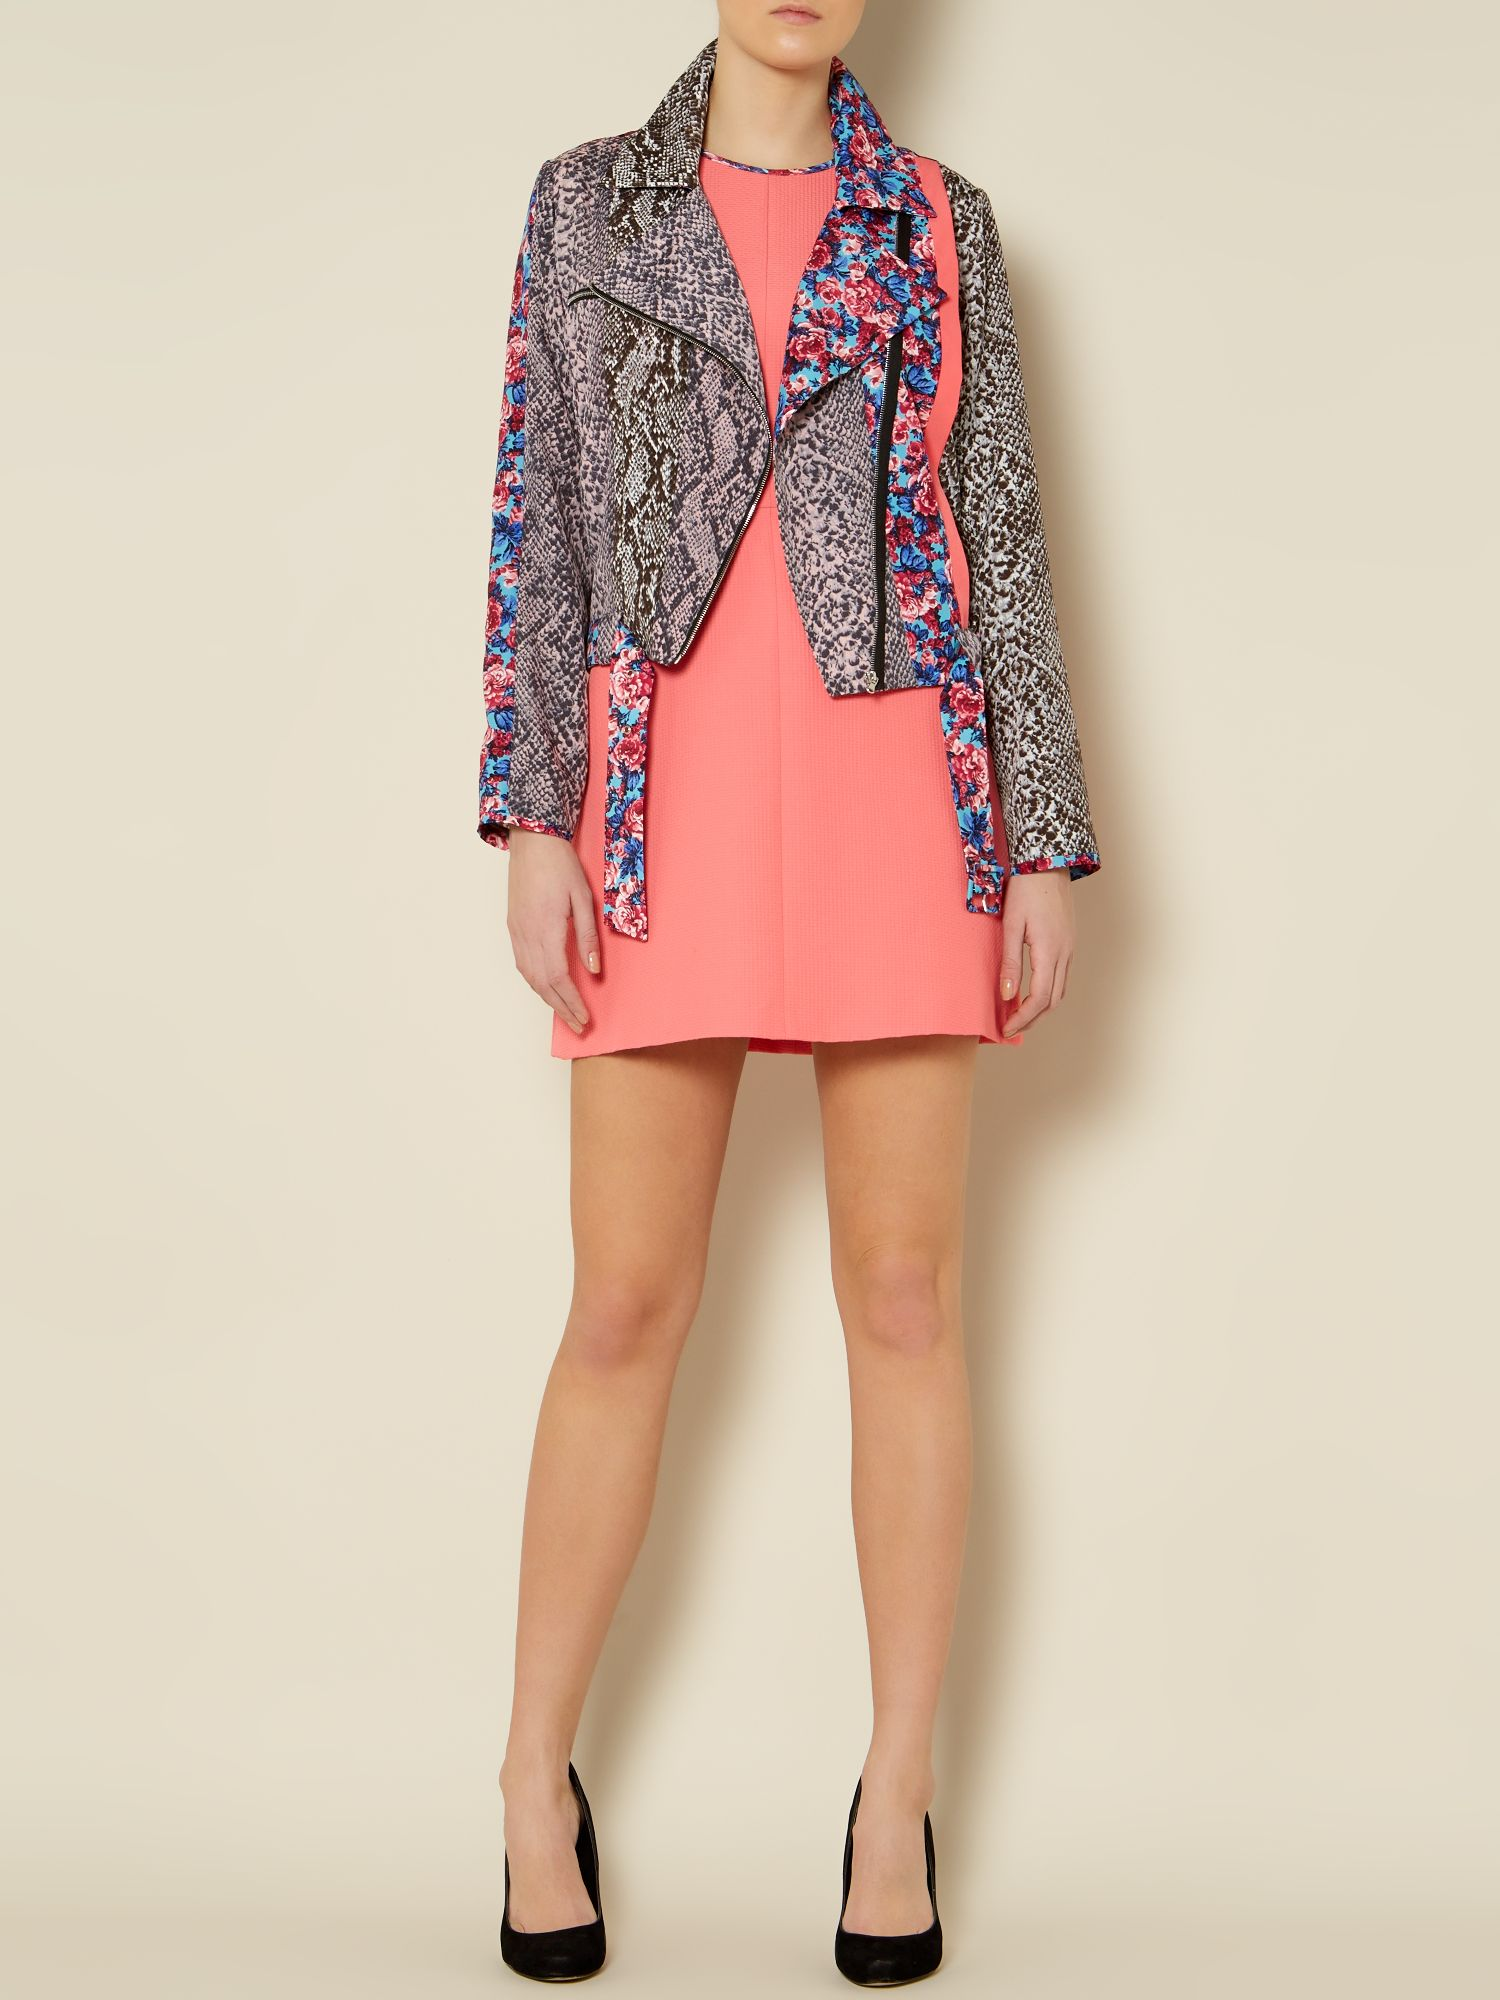 Pontile Leopard and floral biker jacket